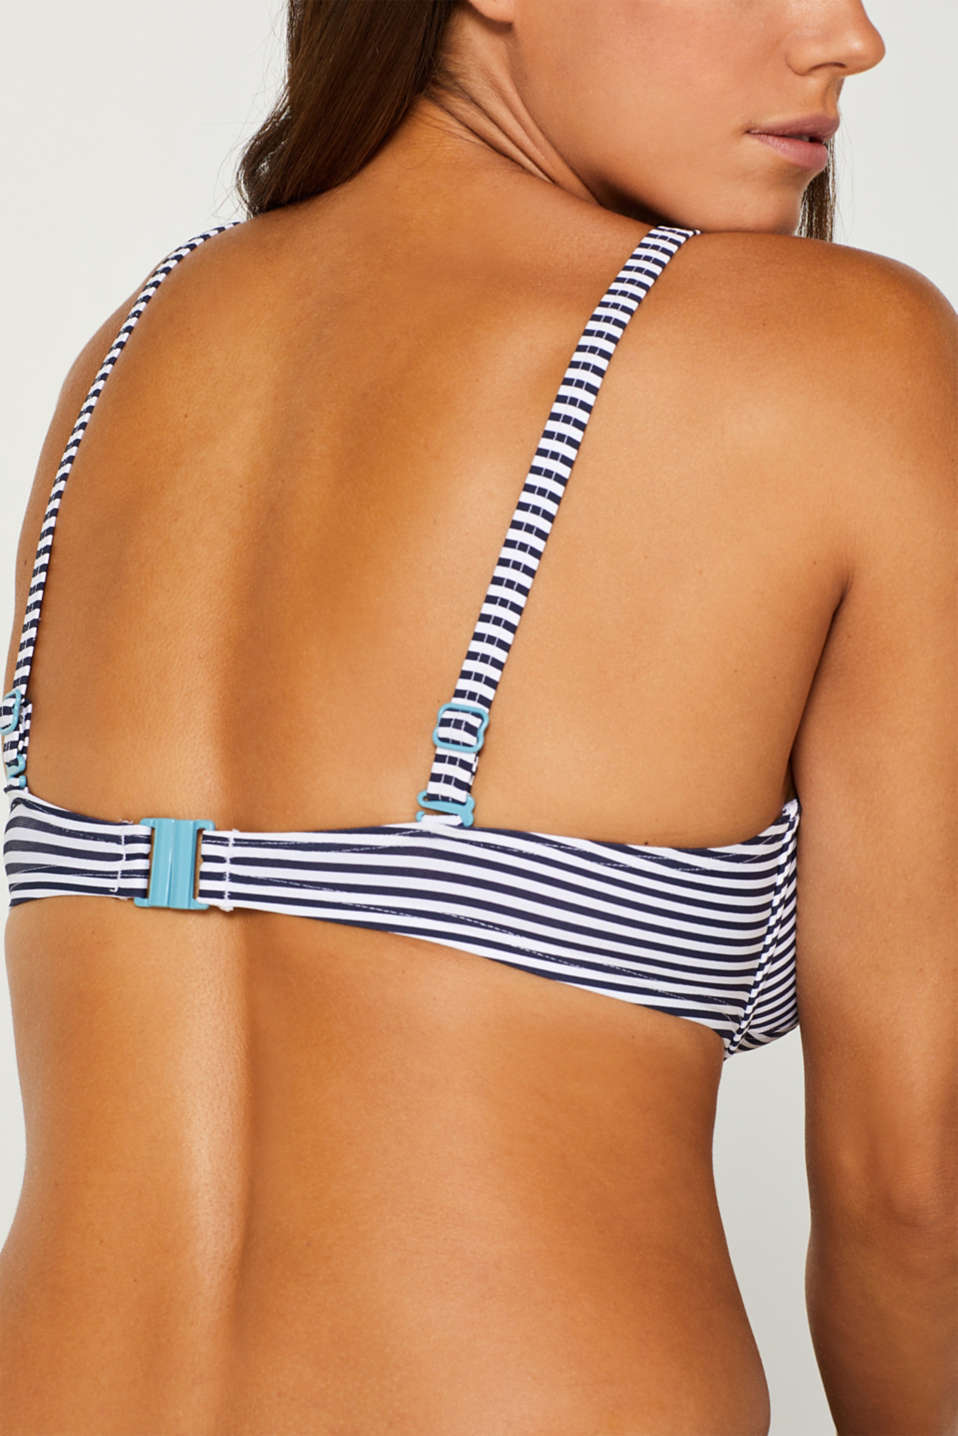 Unpadded underwire top for larger cups, NAVY, detail image number 4